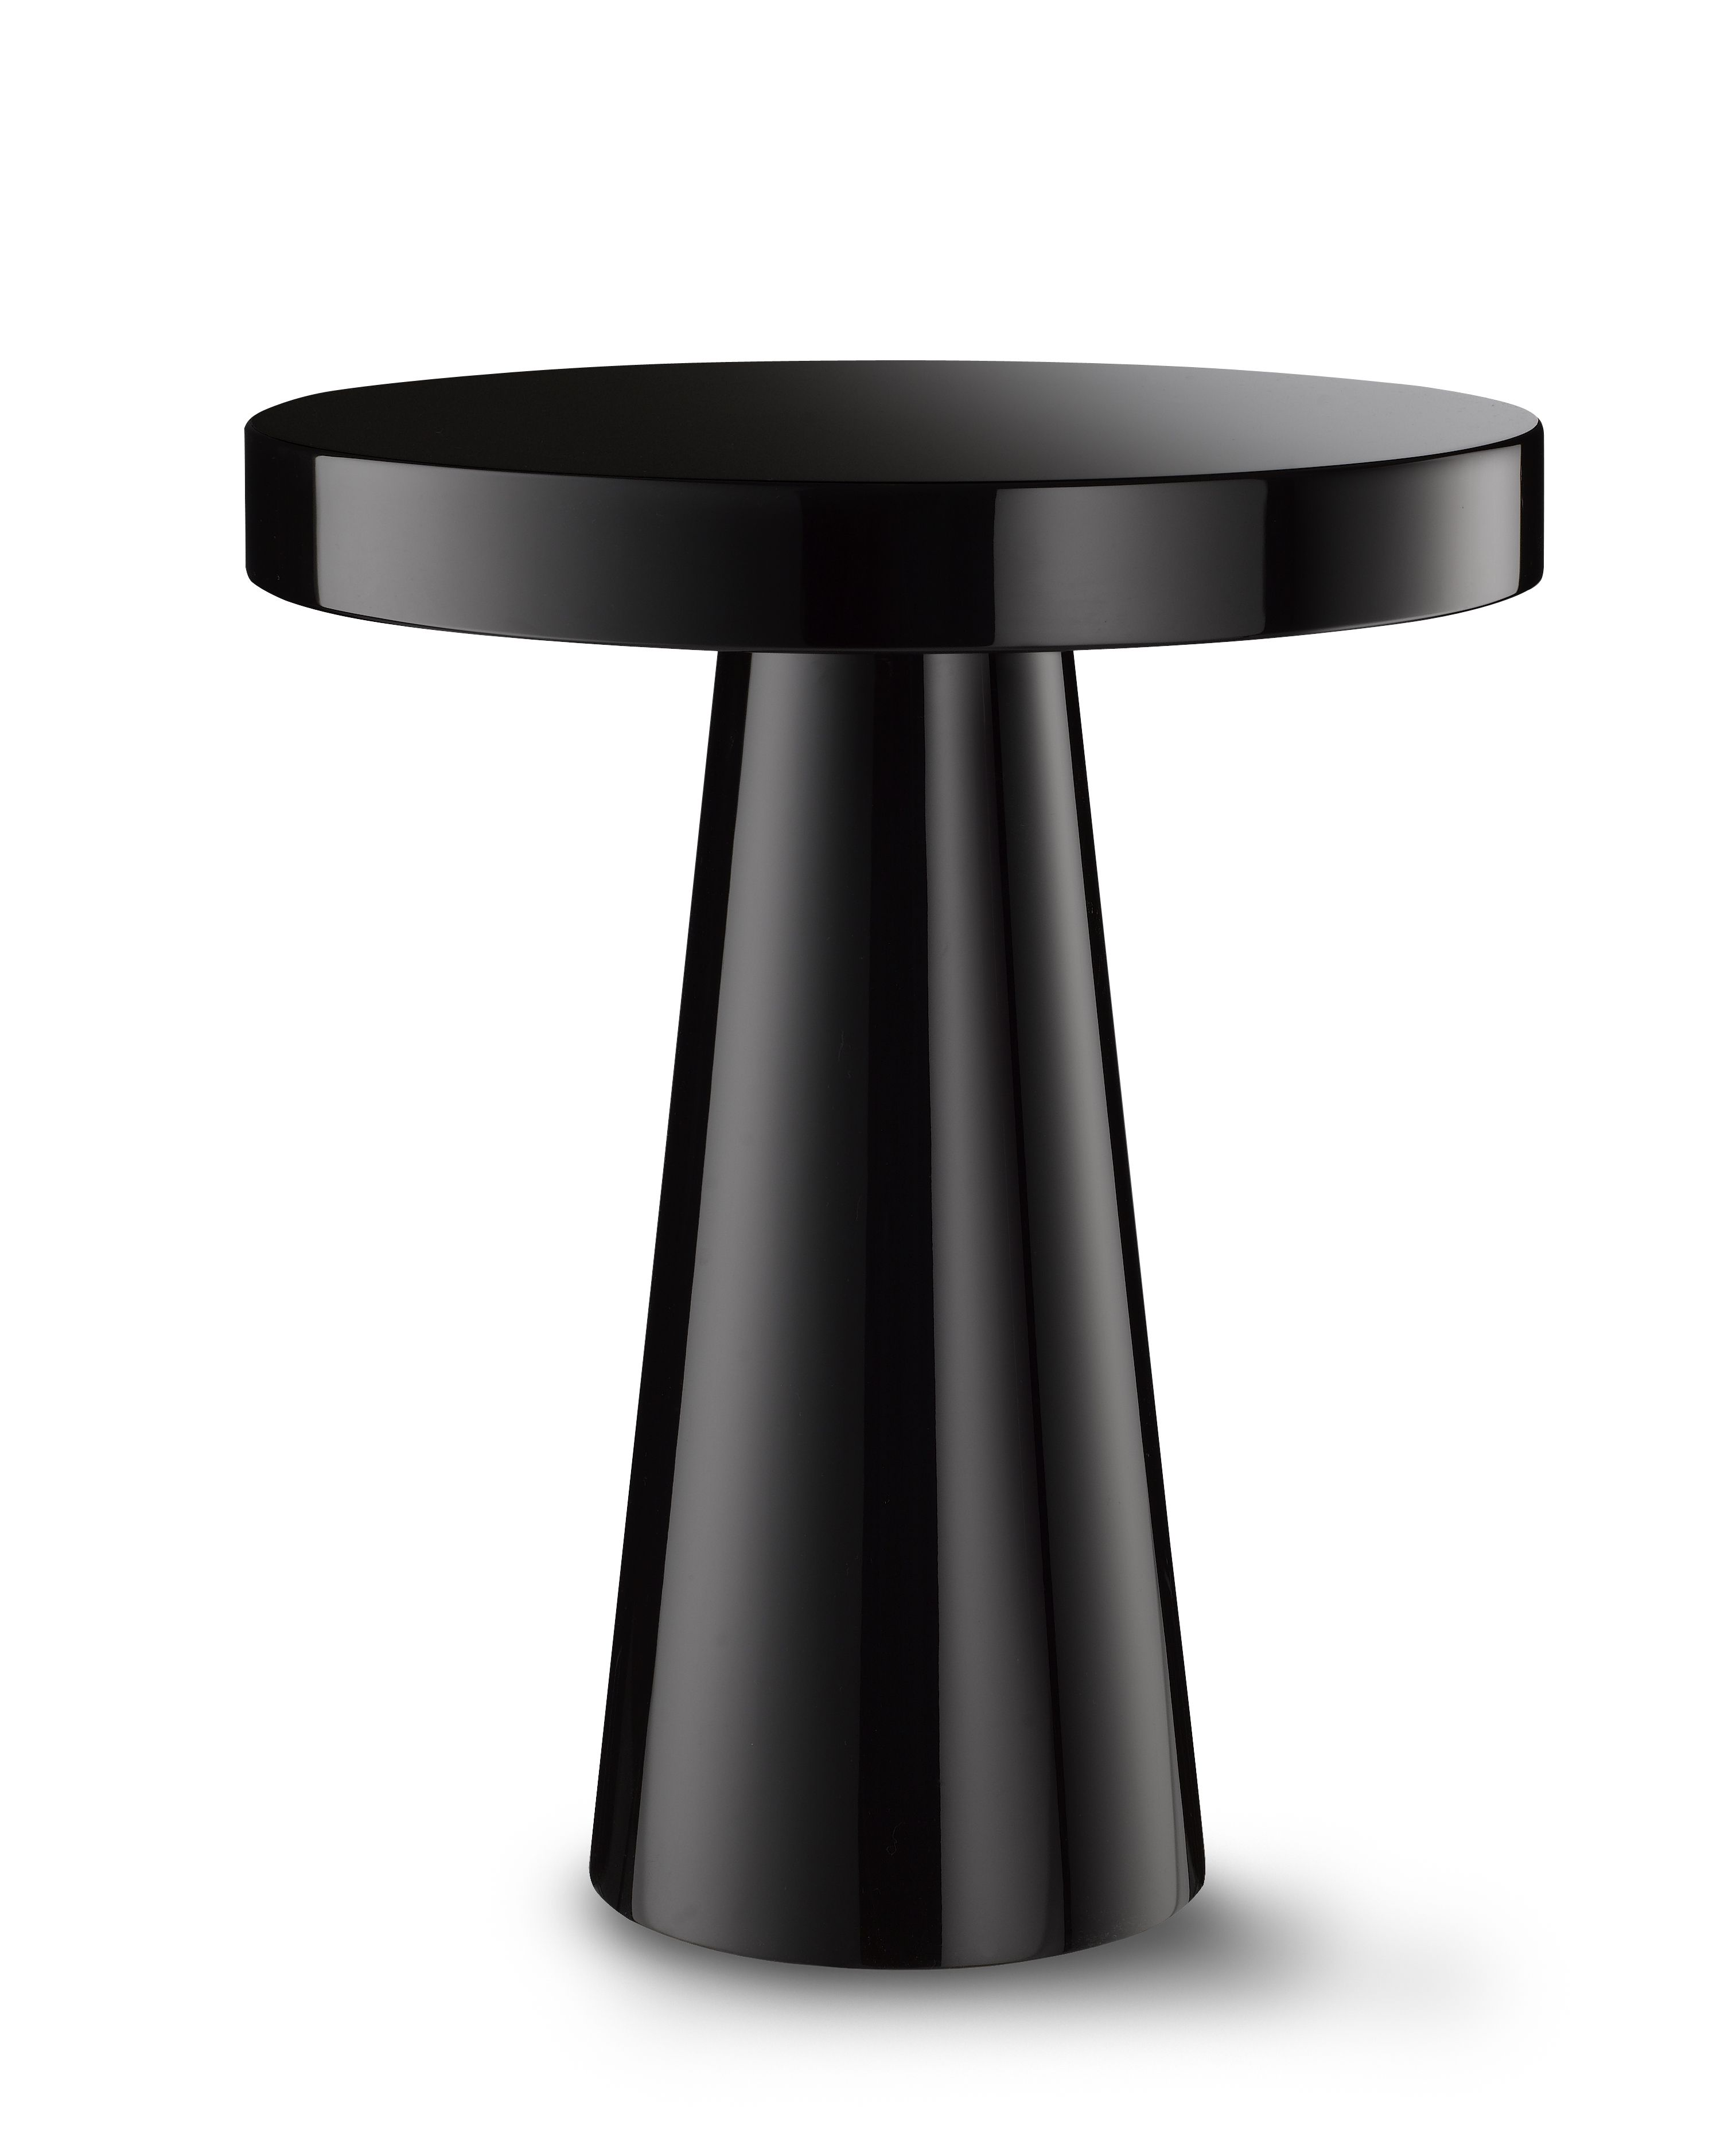 Swell Davidson London The Mushroom Table In High Gloss Black Interior Design Ideas Clesiryabchikinfo